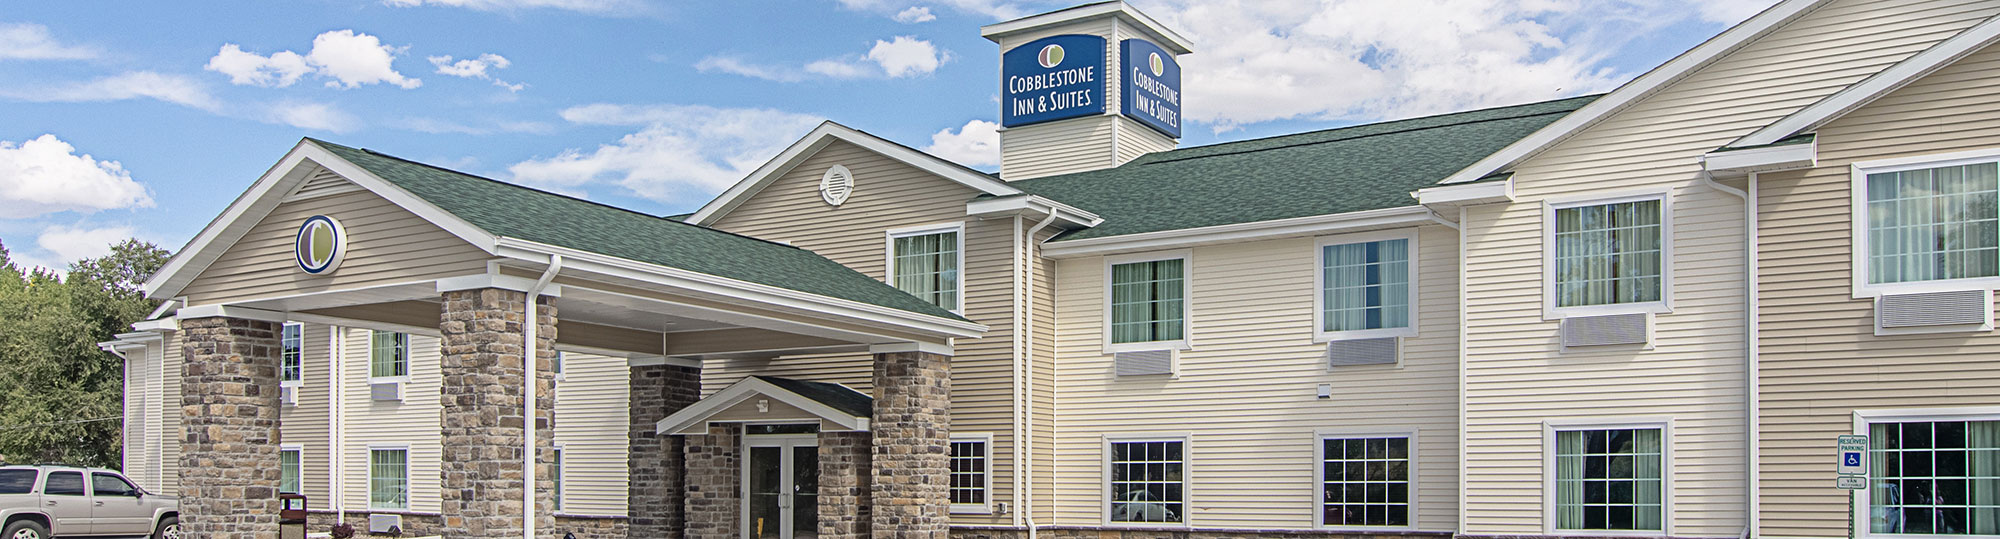 Cobblestone Inn & Suites Pine Bluffs